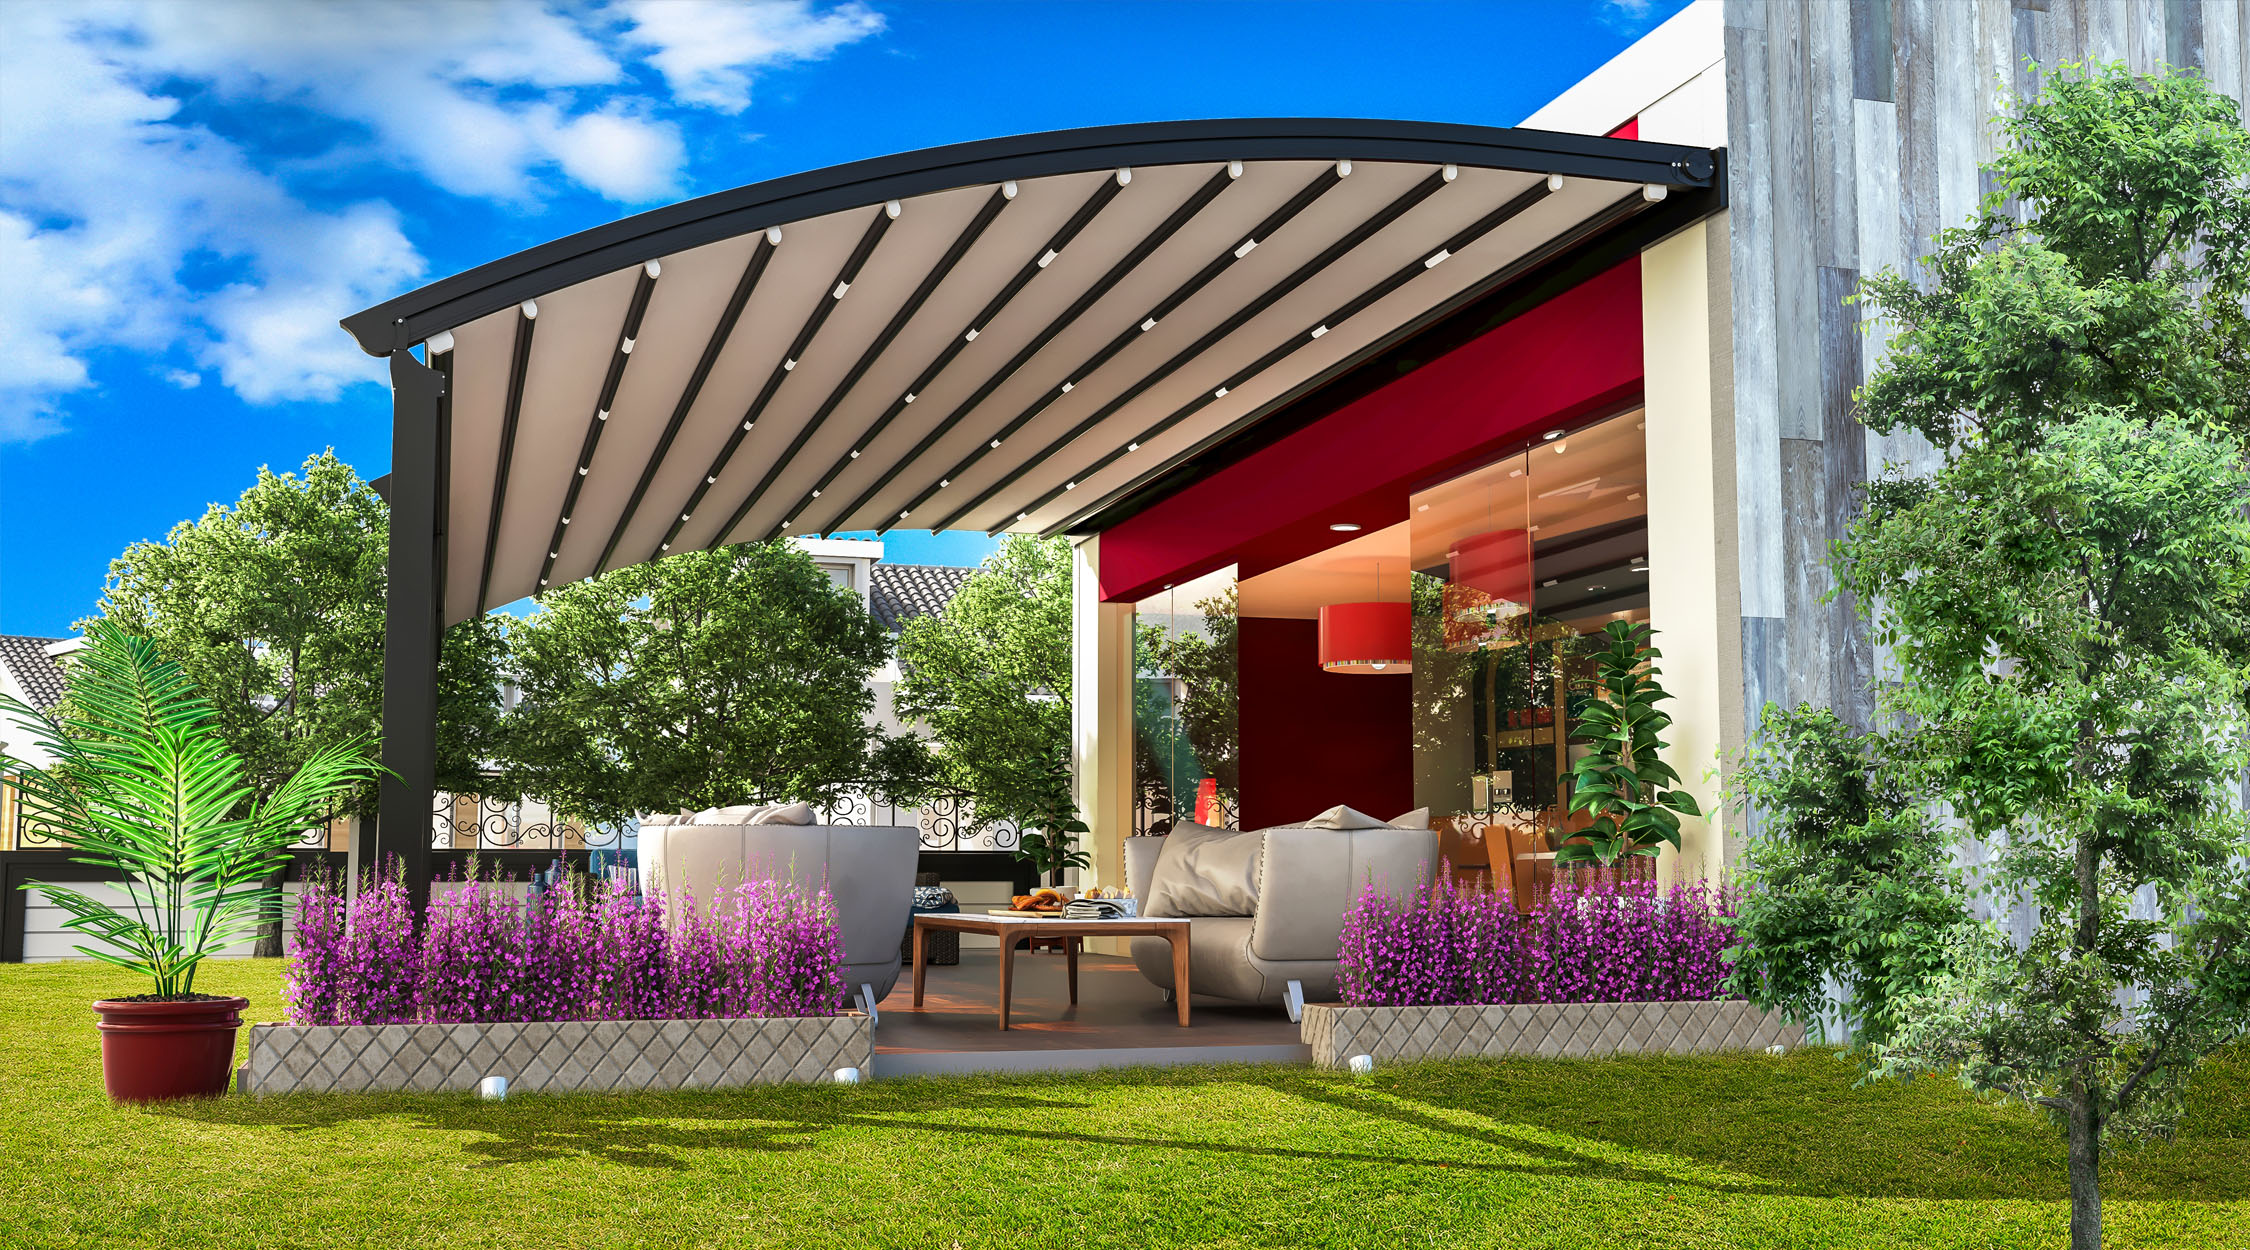 Determine the Benefits behind Installing Pergolas at the Home